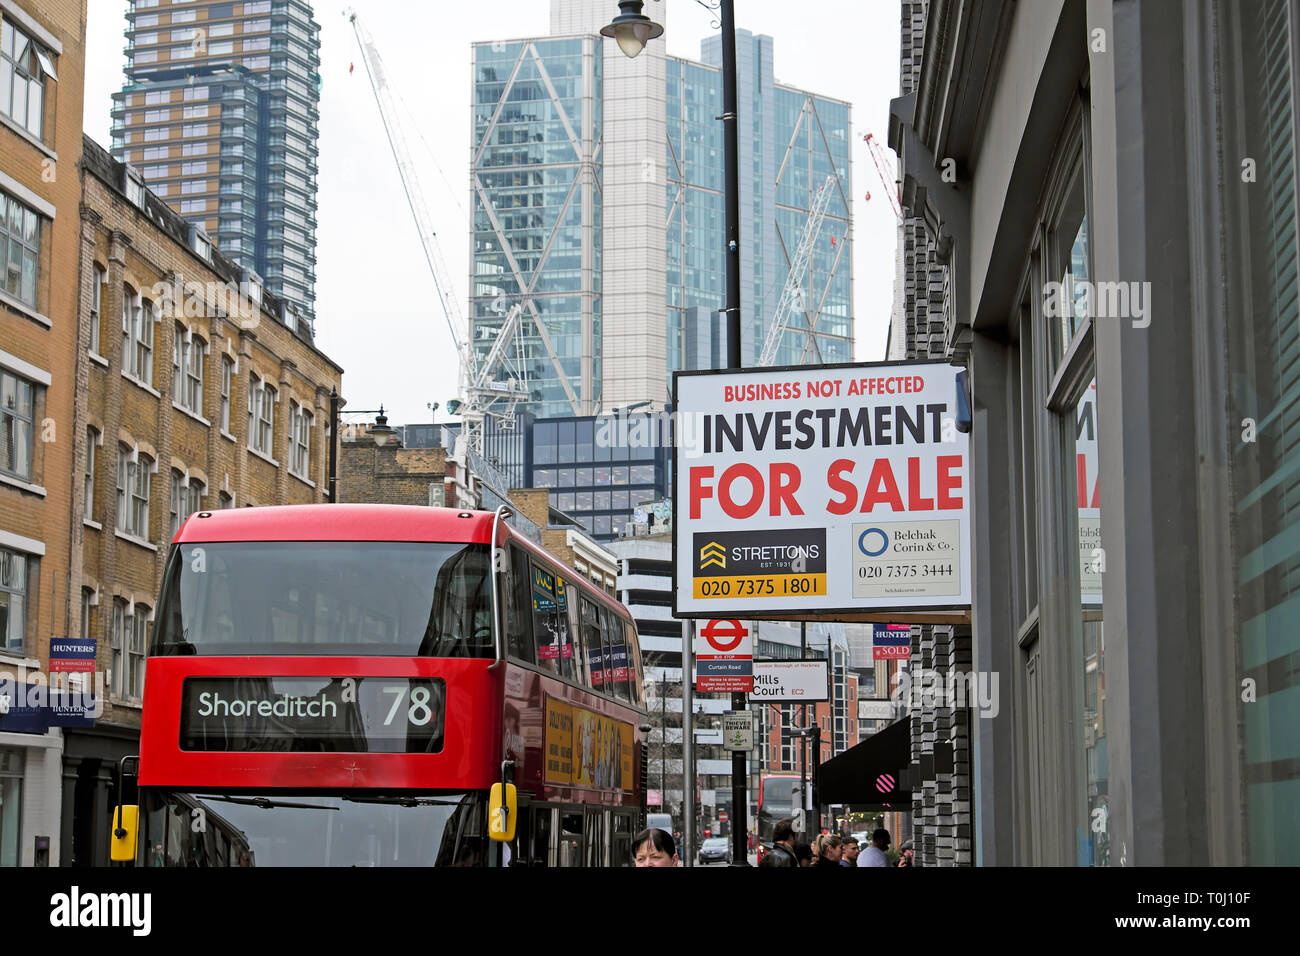 The 78 Shoreditch bus and property for sale investment sign in a street in East London UK  KATHY DEWITT Stock Photo